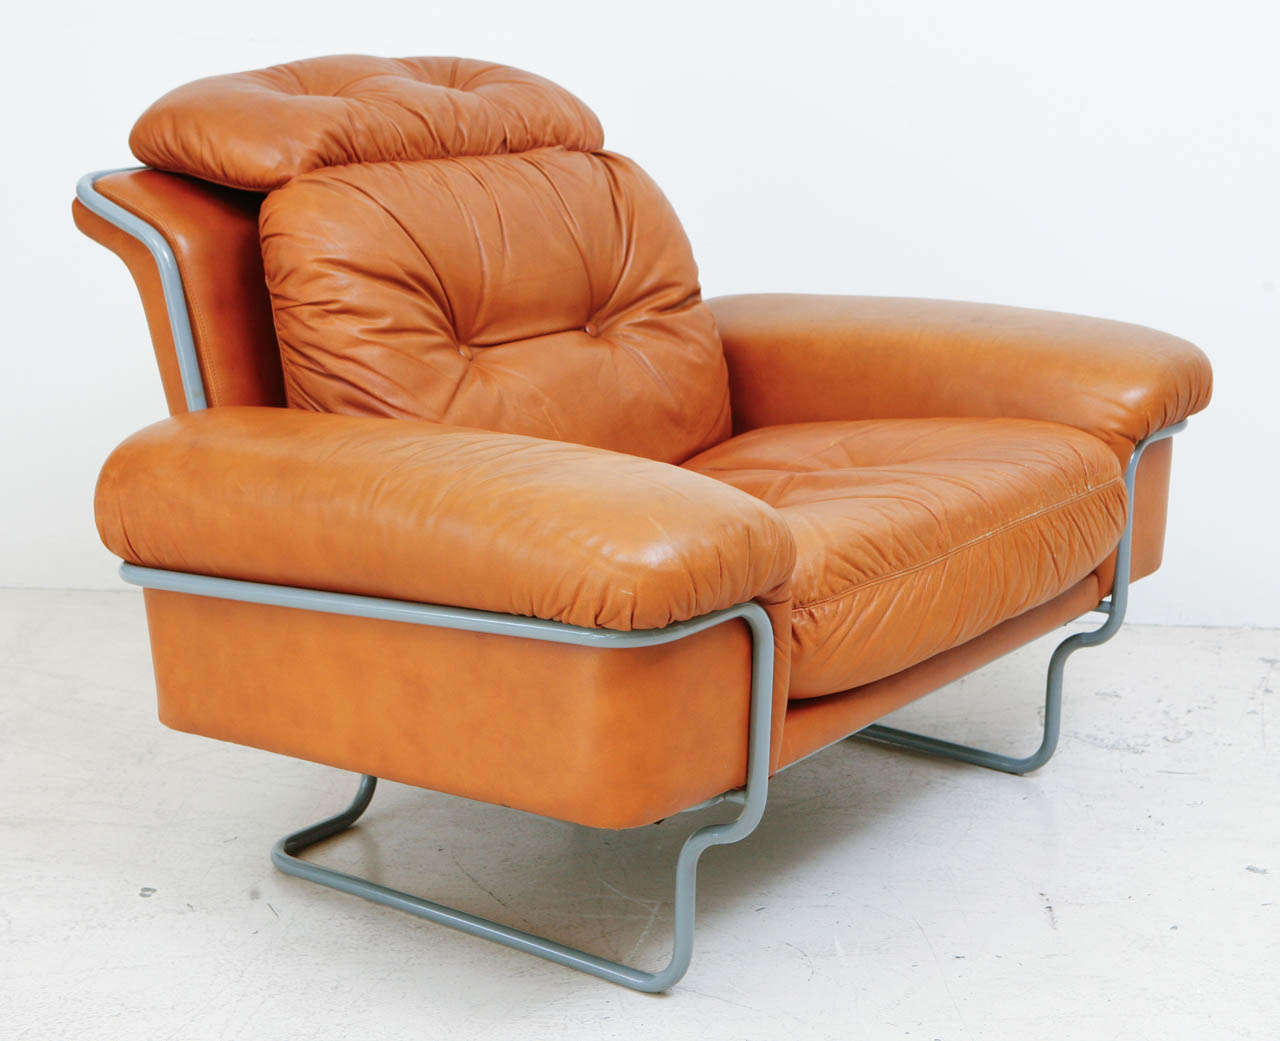 Pair of Tufted Leather Lounge Chairs at 1stdibs